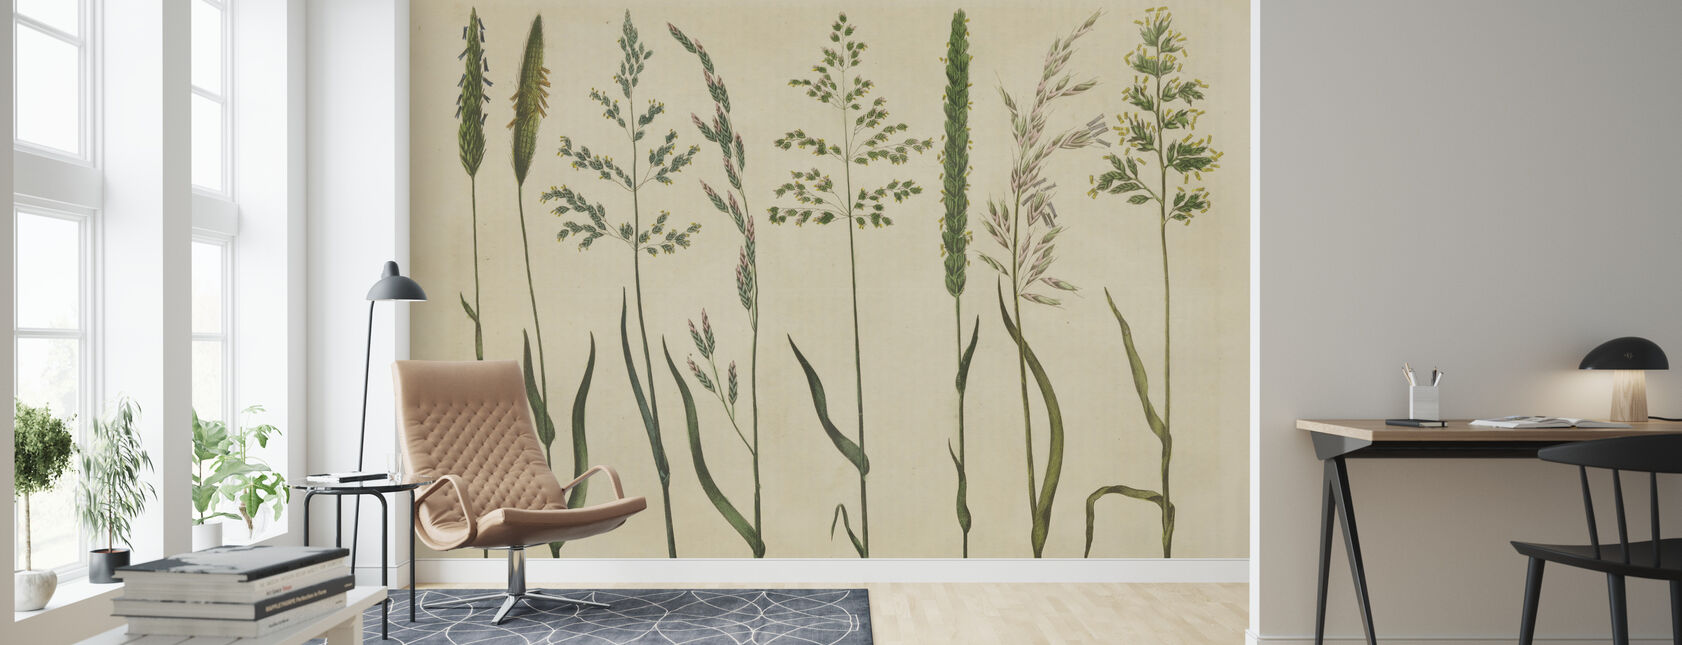 Herbal Botanical VII - Wallpaper - Living Room